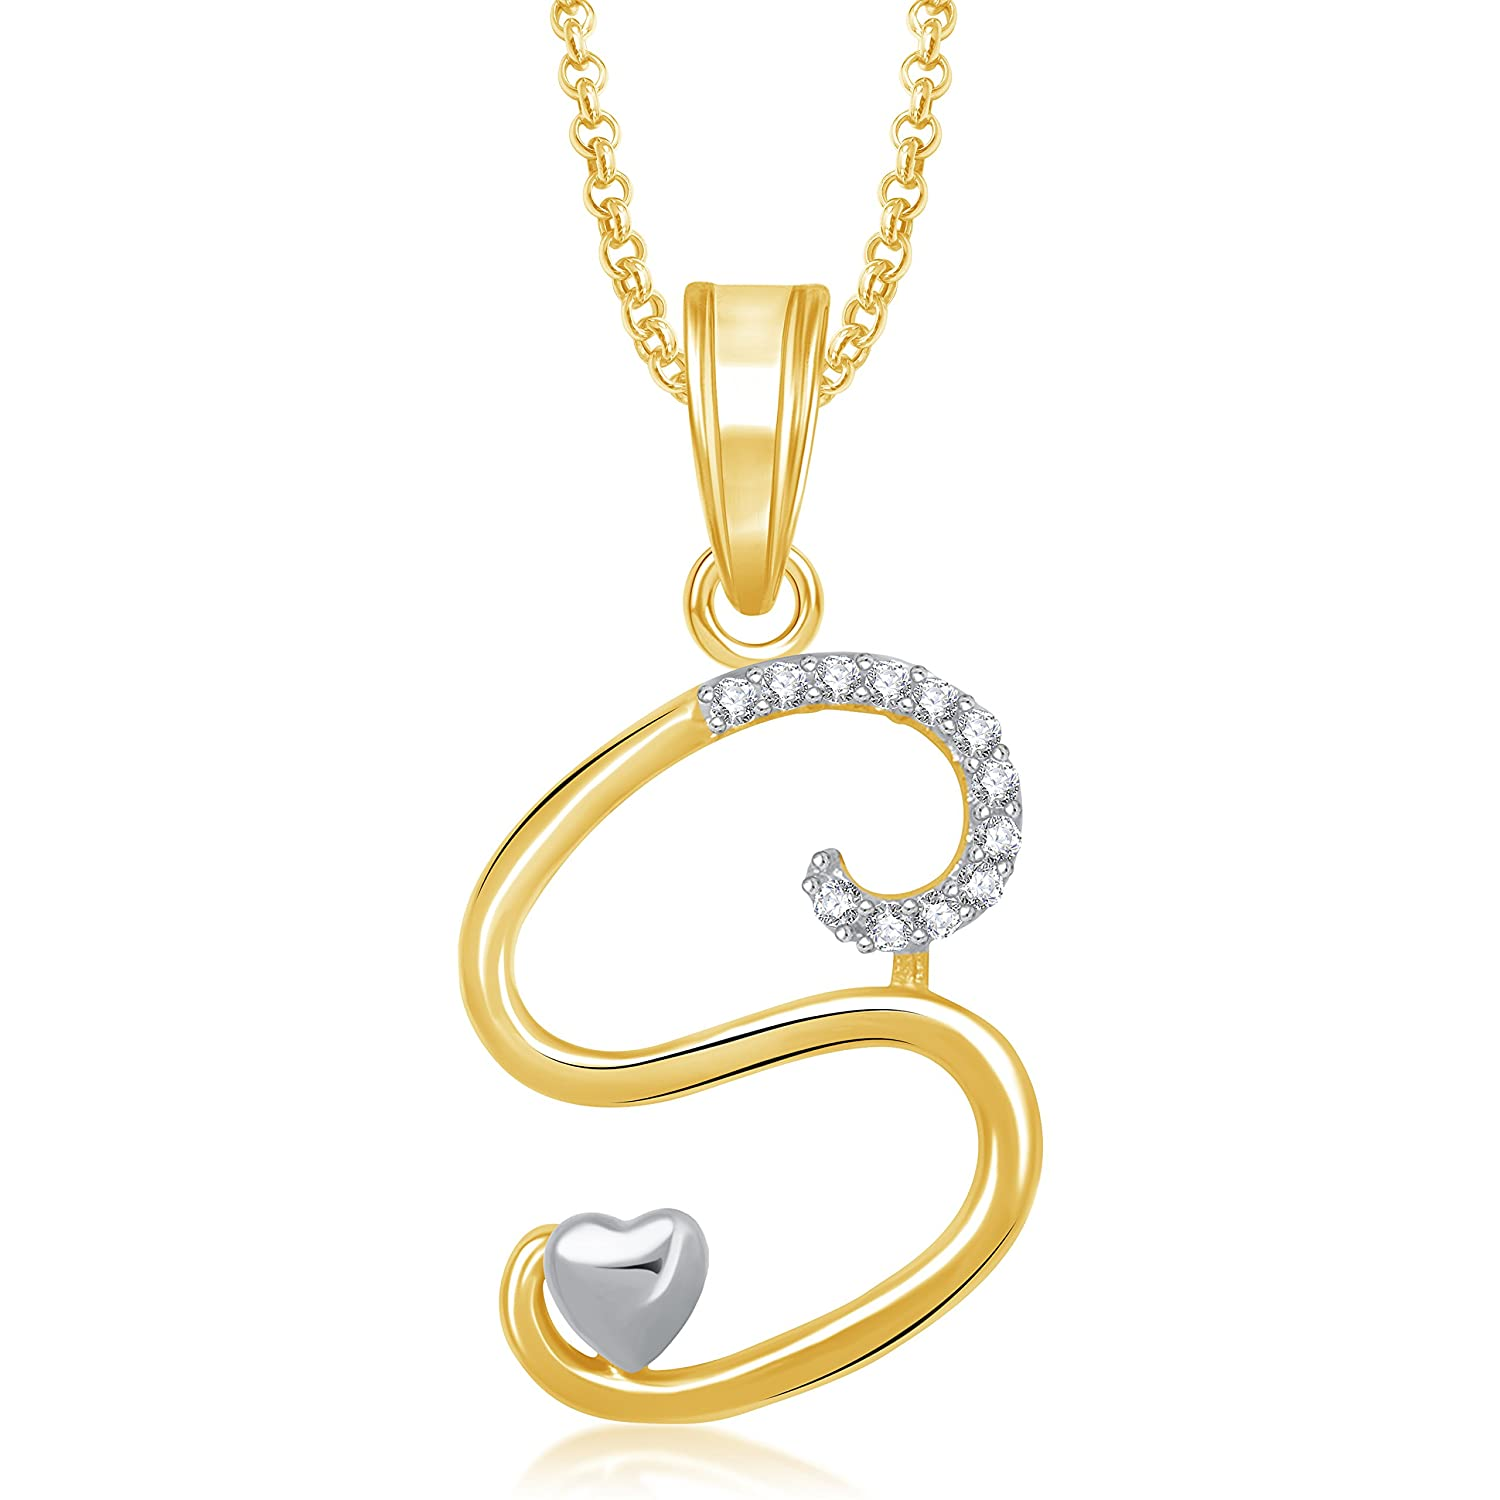 necklaces gold circle lot chain girls product key necklace logo wholesale cosplay statements silver for pendant superman women pendants s letter long gift